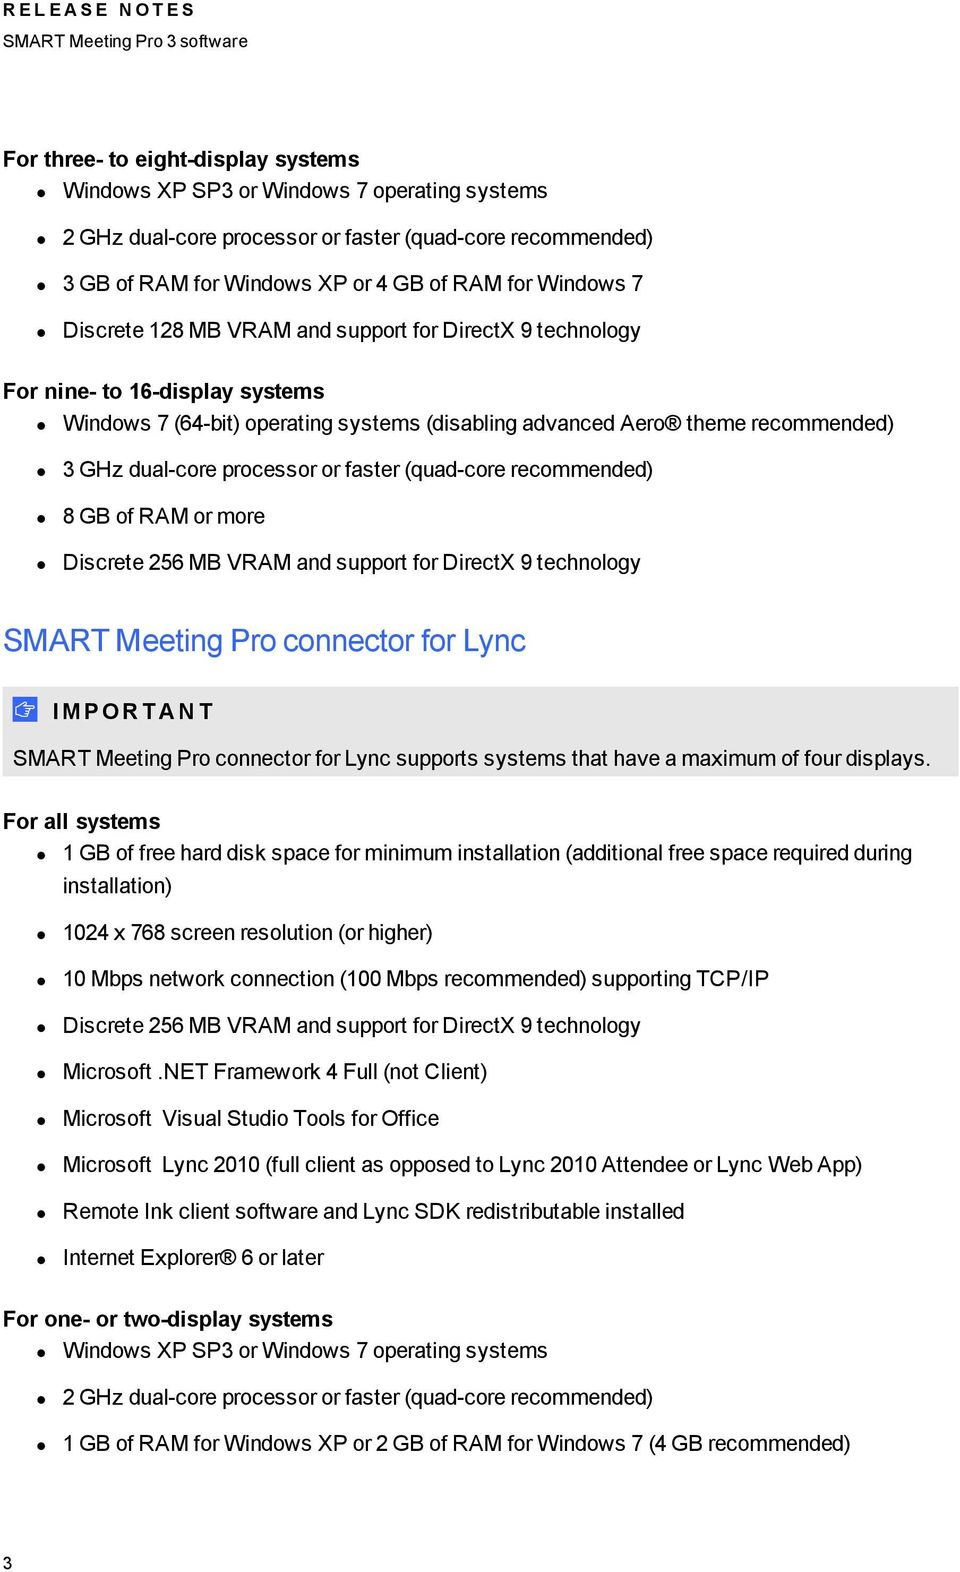 faster (quad-core recommended) 8 GB of RAM or more Discrete 256 MB VRAM and support for DirectX 9 technology SMART Meeting Pro connector for Lync I M P OR T A N T SMART Meeting Pro connector for Lync